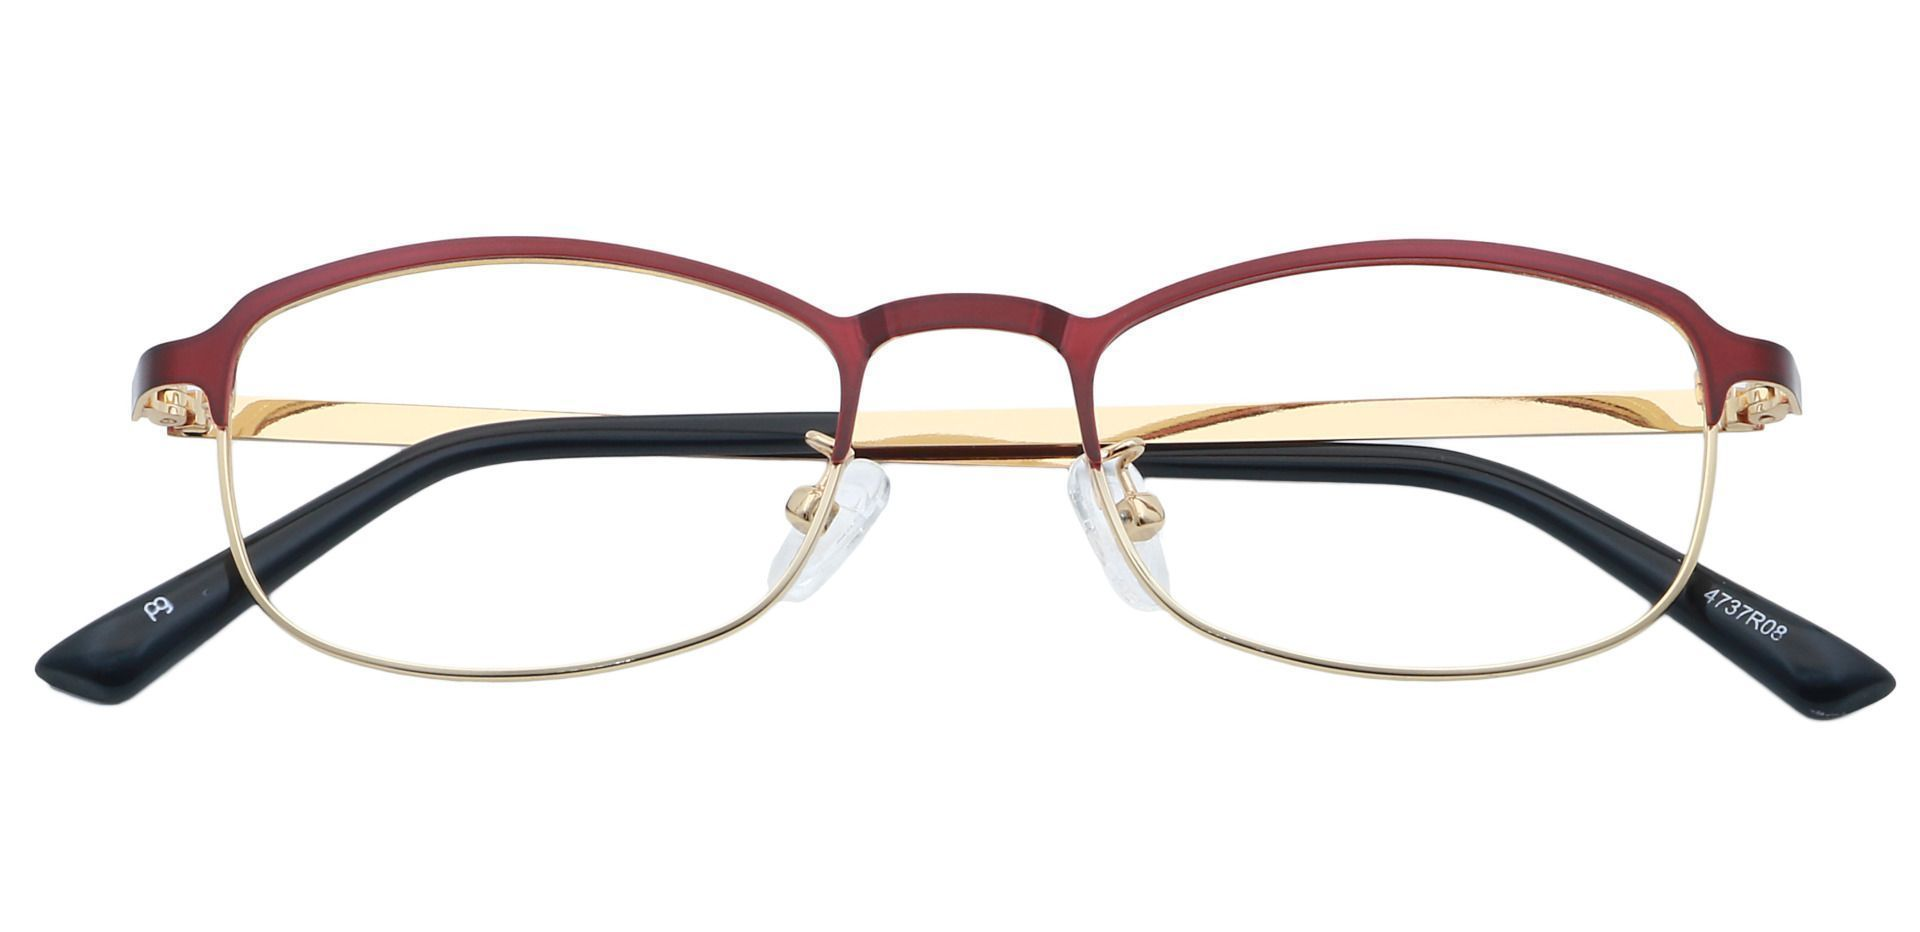 Tyrell Oval Progressive Glasses - Red